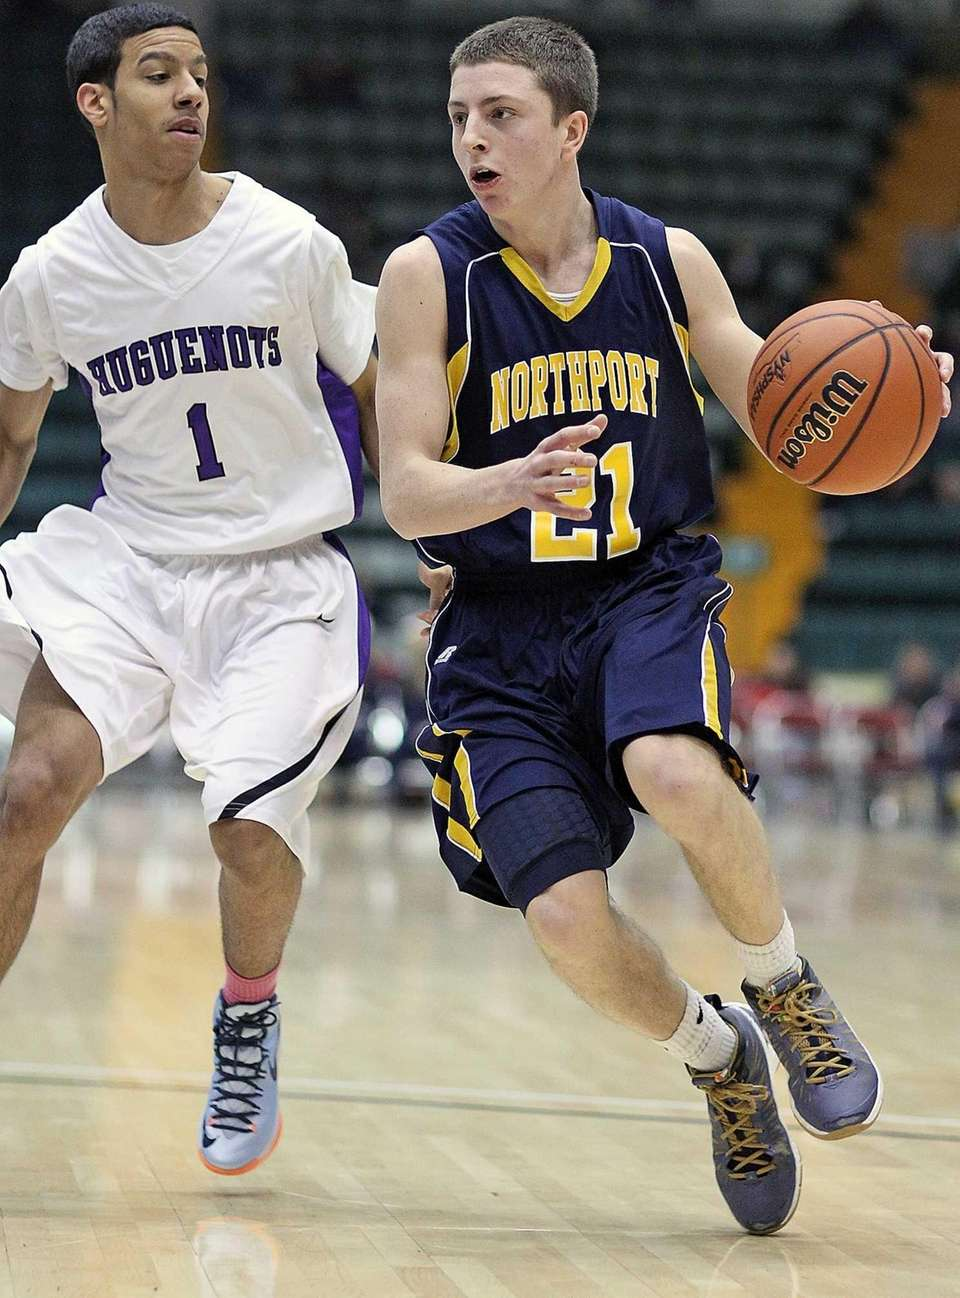 Northport's Austin Marchese runs against Donny Powell. (March